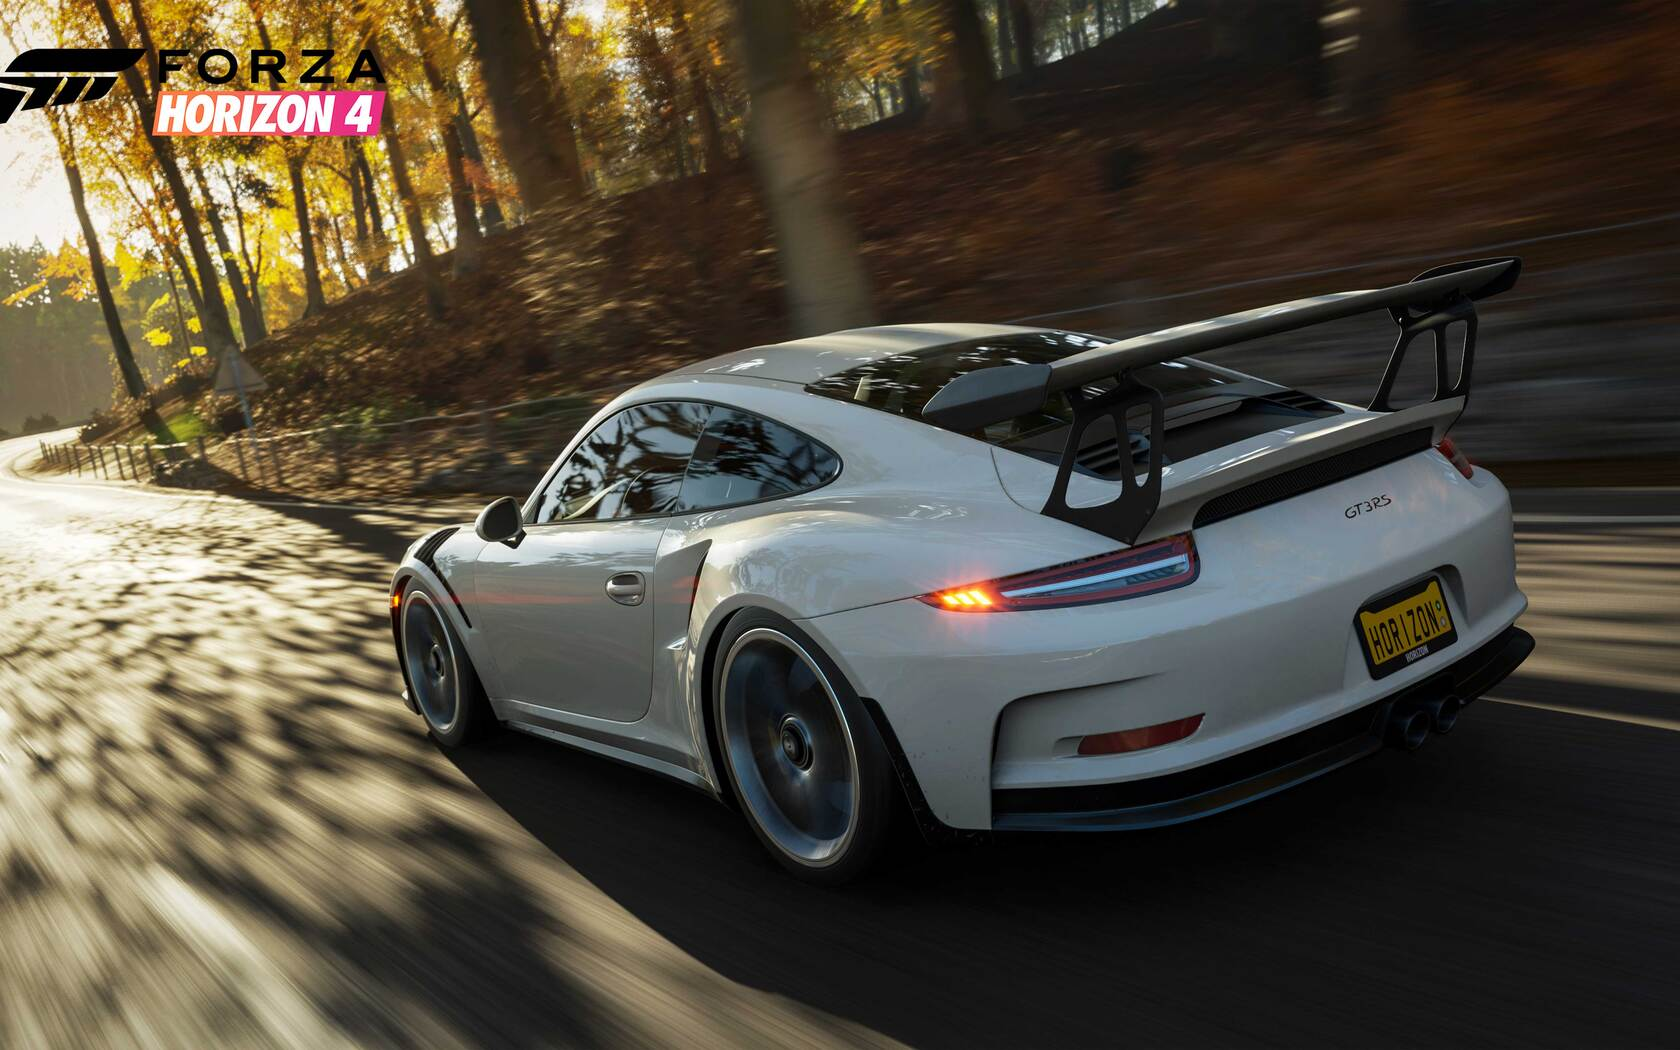 1680x1050 forza horizon 4 gt3 rs 5k 1680x1050 resolution hd 4k wallpapers images backgrounds - Forza logo wallpaper ...